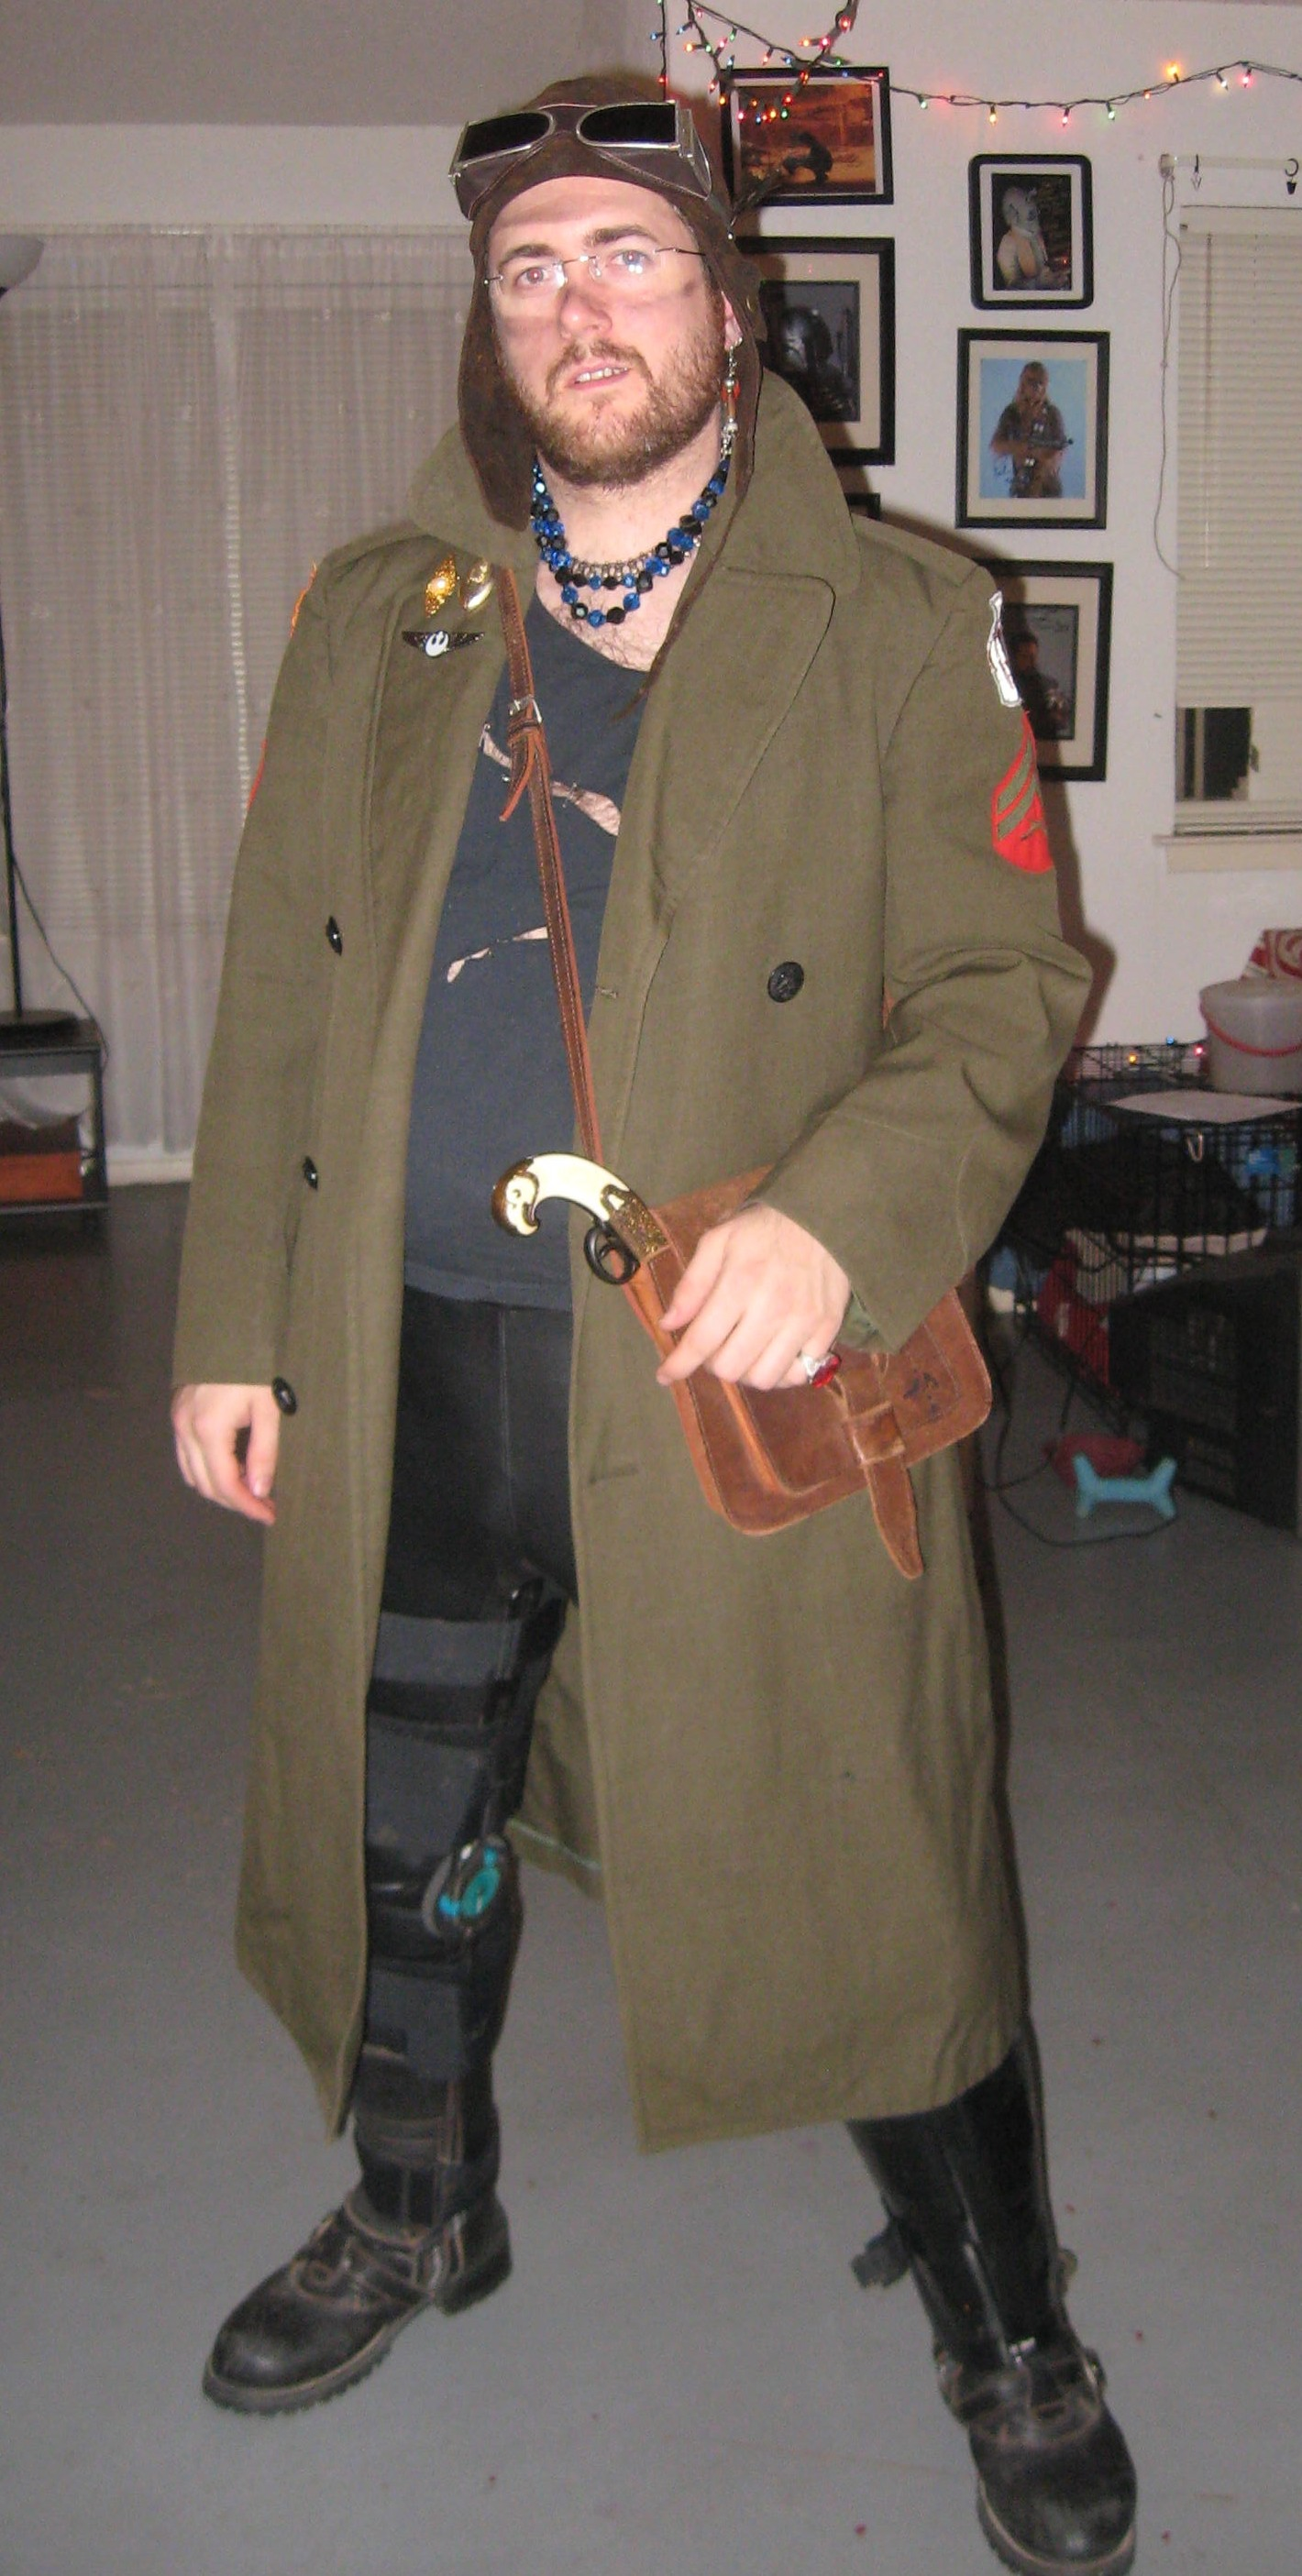 post-apocalyptic costumes | My Attempts at Cleverness